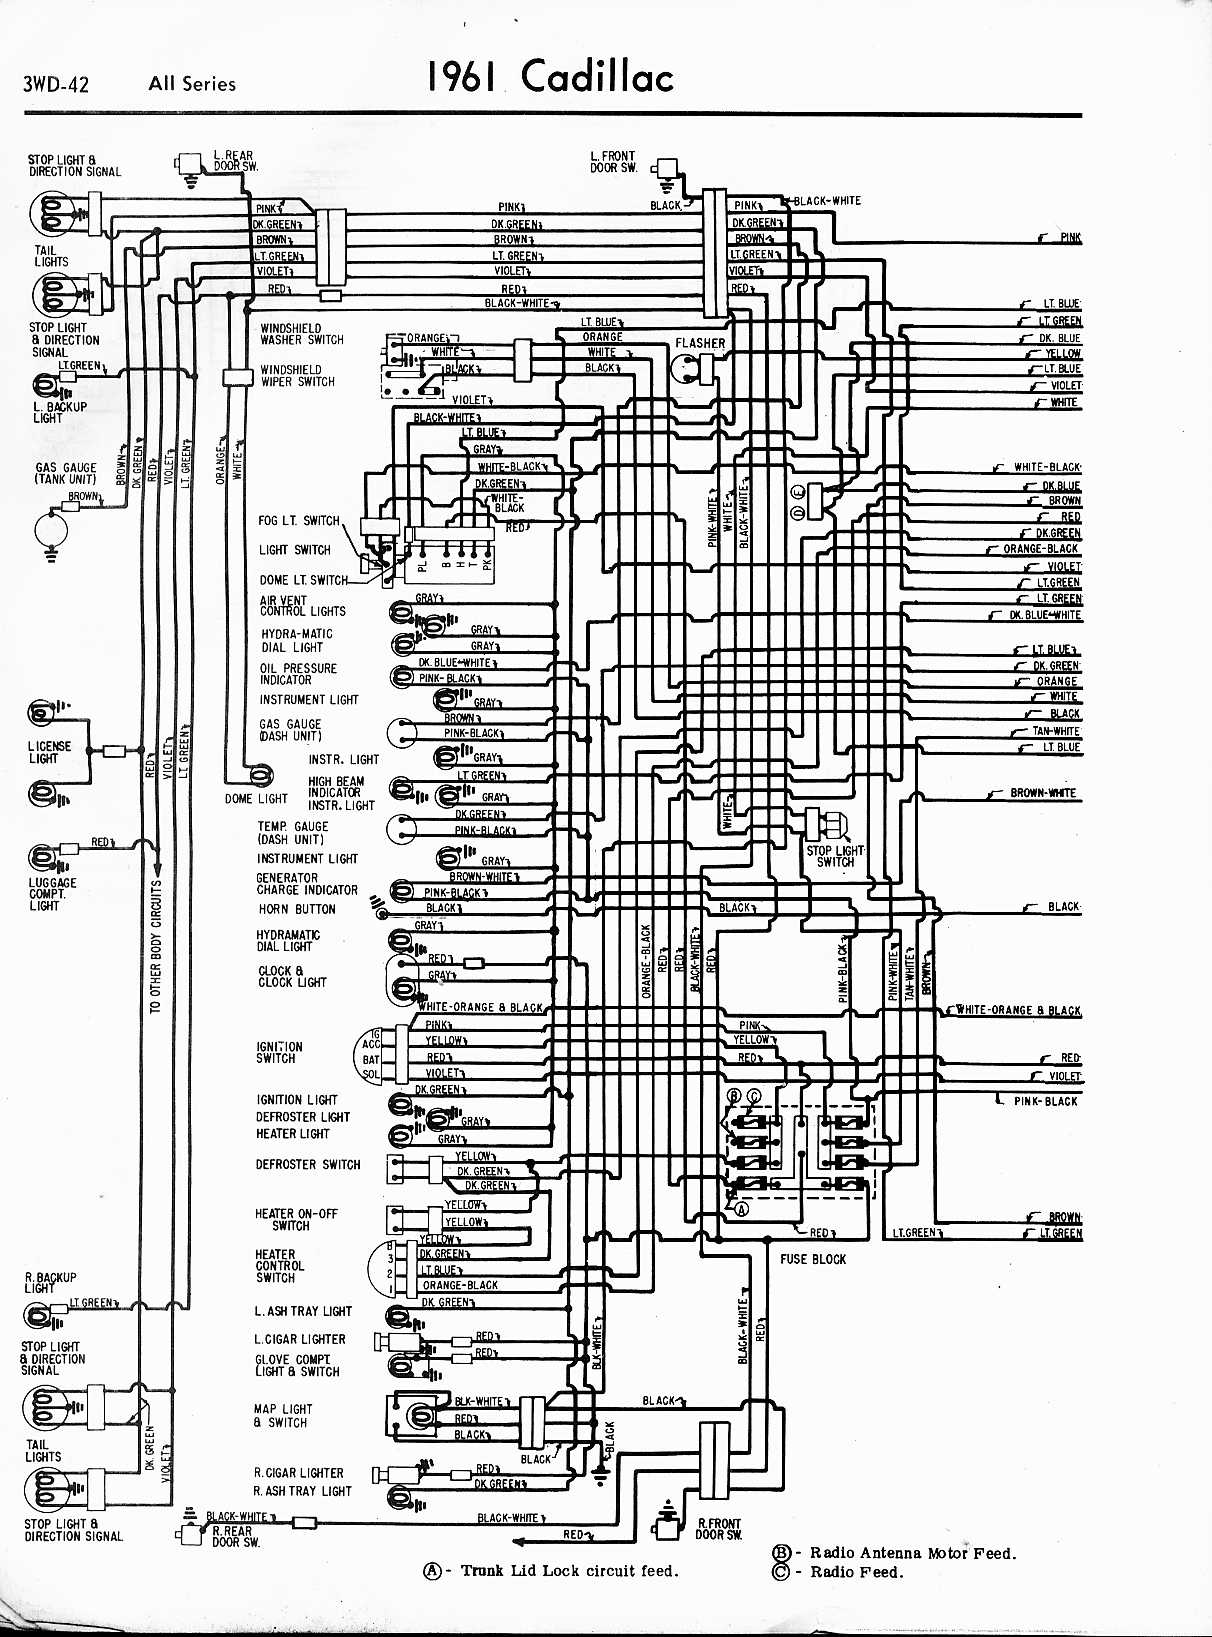 [DIAGRAM_3ER]  1965 Cadillac Wiring Diagram Diagram Base Website Wiring Diagram -  HEARTDIAGRAMWORKSHEET.RIFUGIDELLAROSA.IT | Cadillac Engine Wiring Diagram |  | Diagram Base Website Full Edition - rifugidellarosa